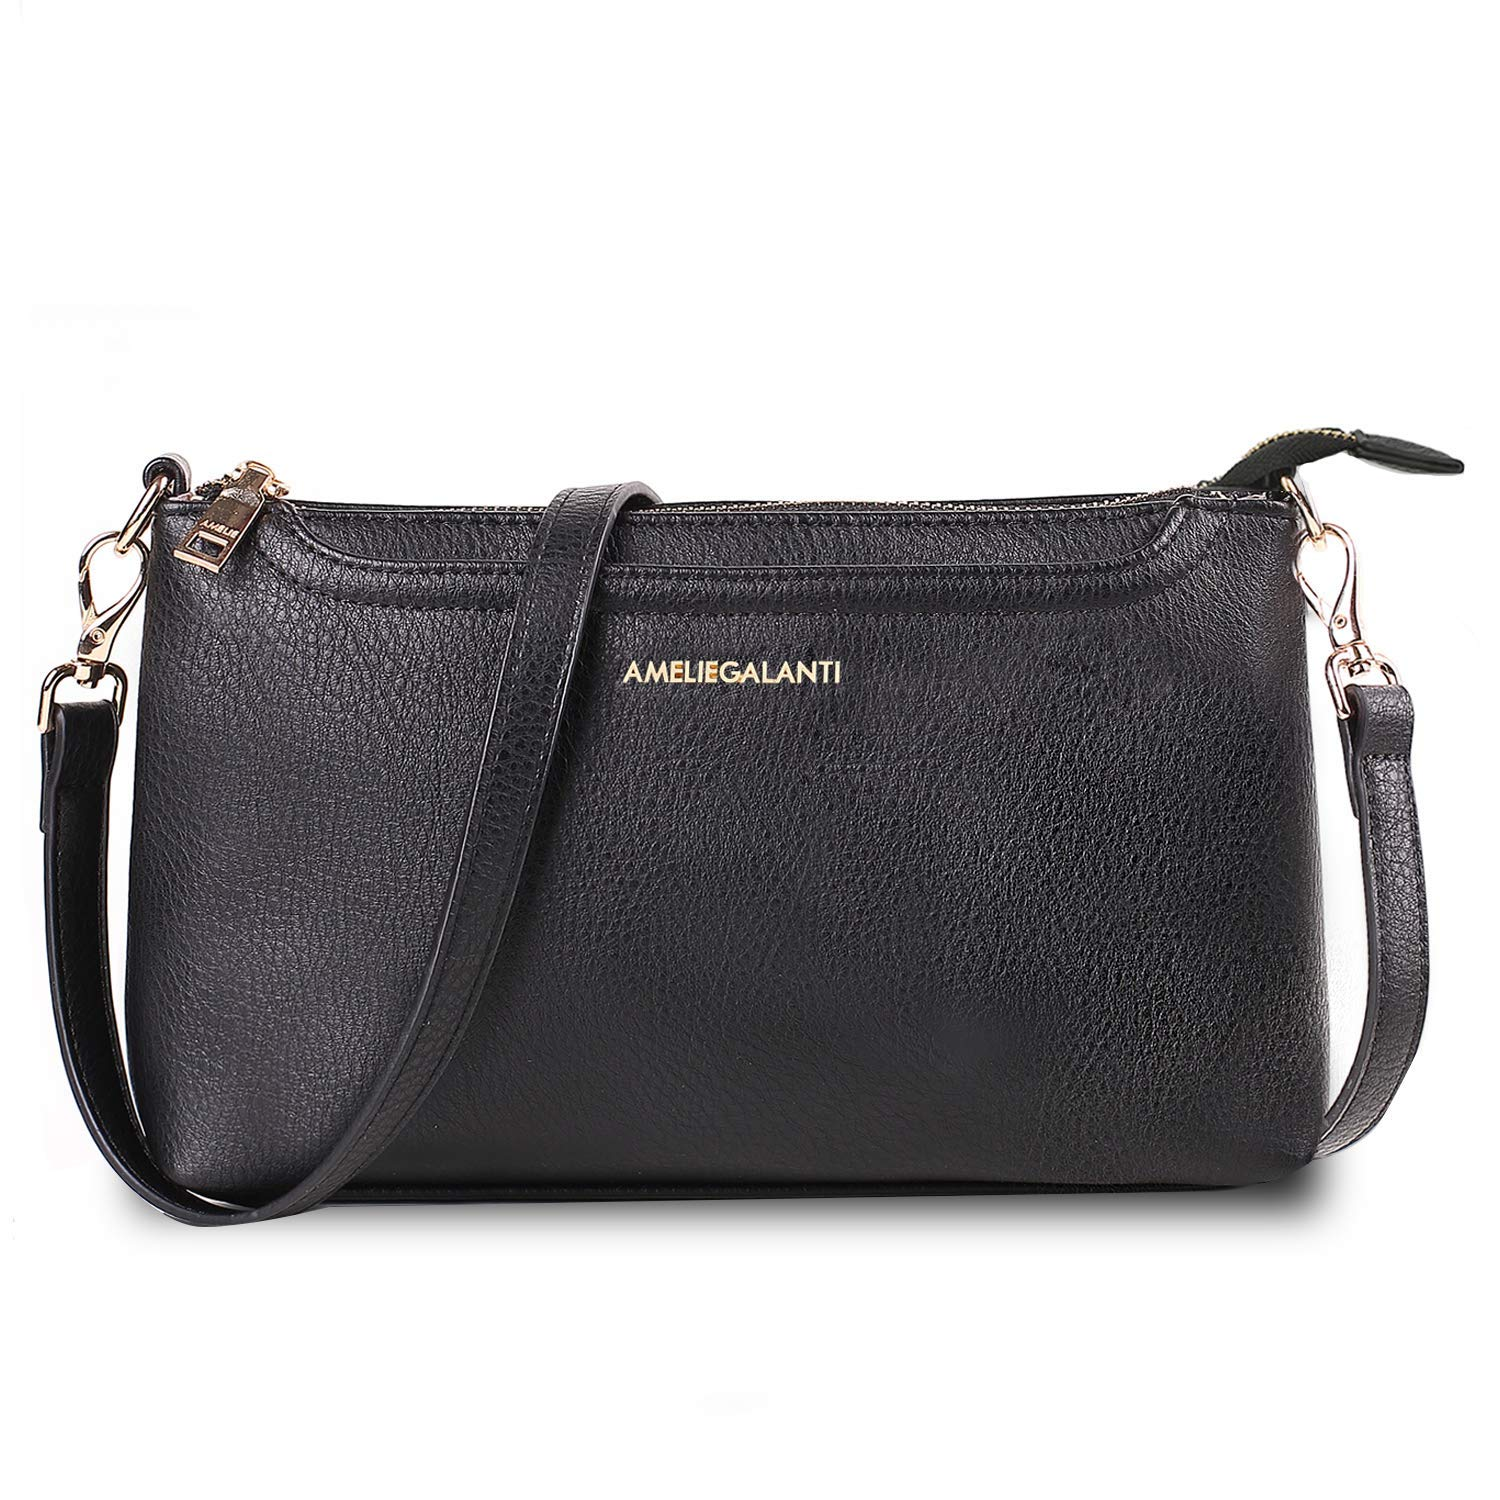 Crossbody Bags for Women, Lightweight Purses and Handbags PU Leather Small Shoulder Bag Satchel with Adjustable Strap